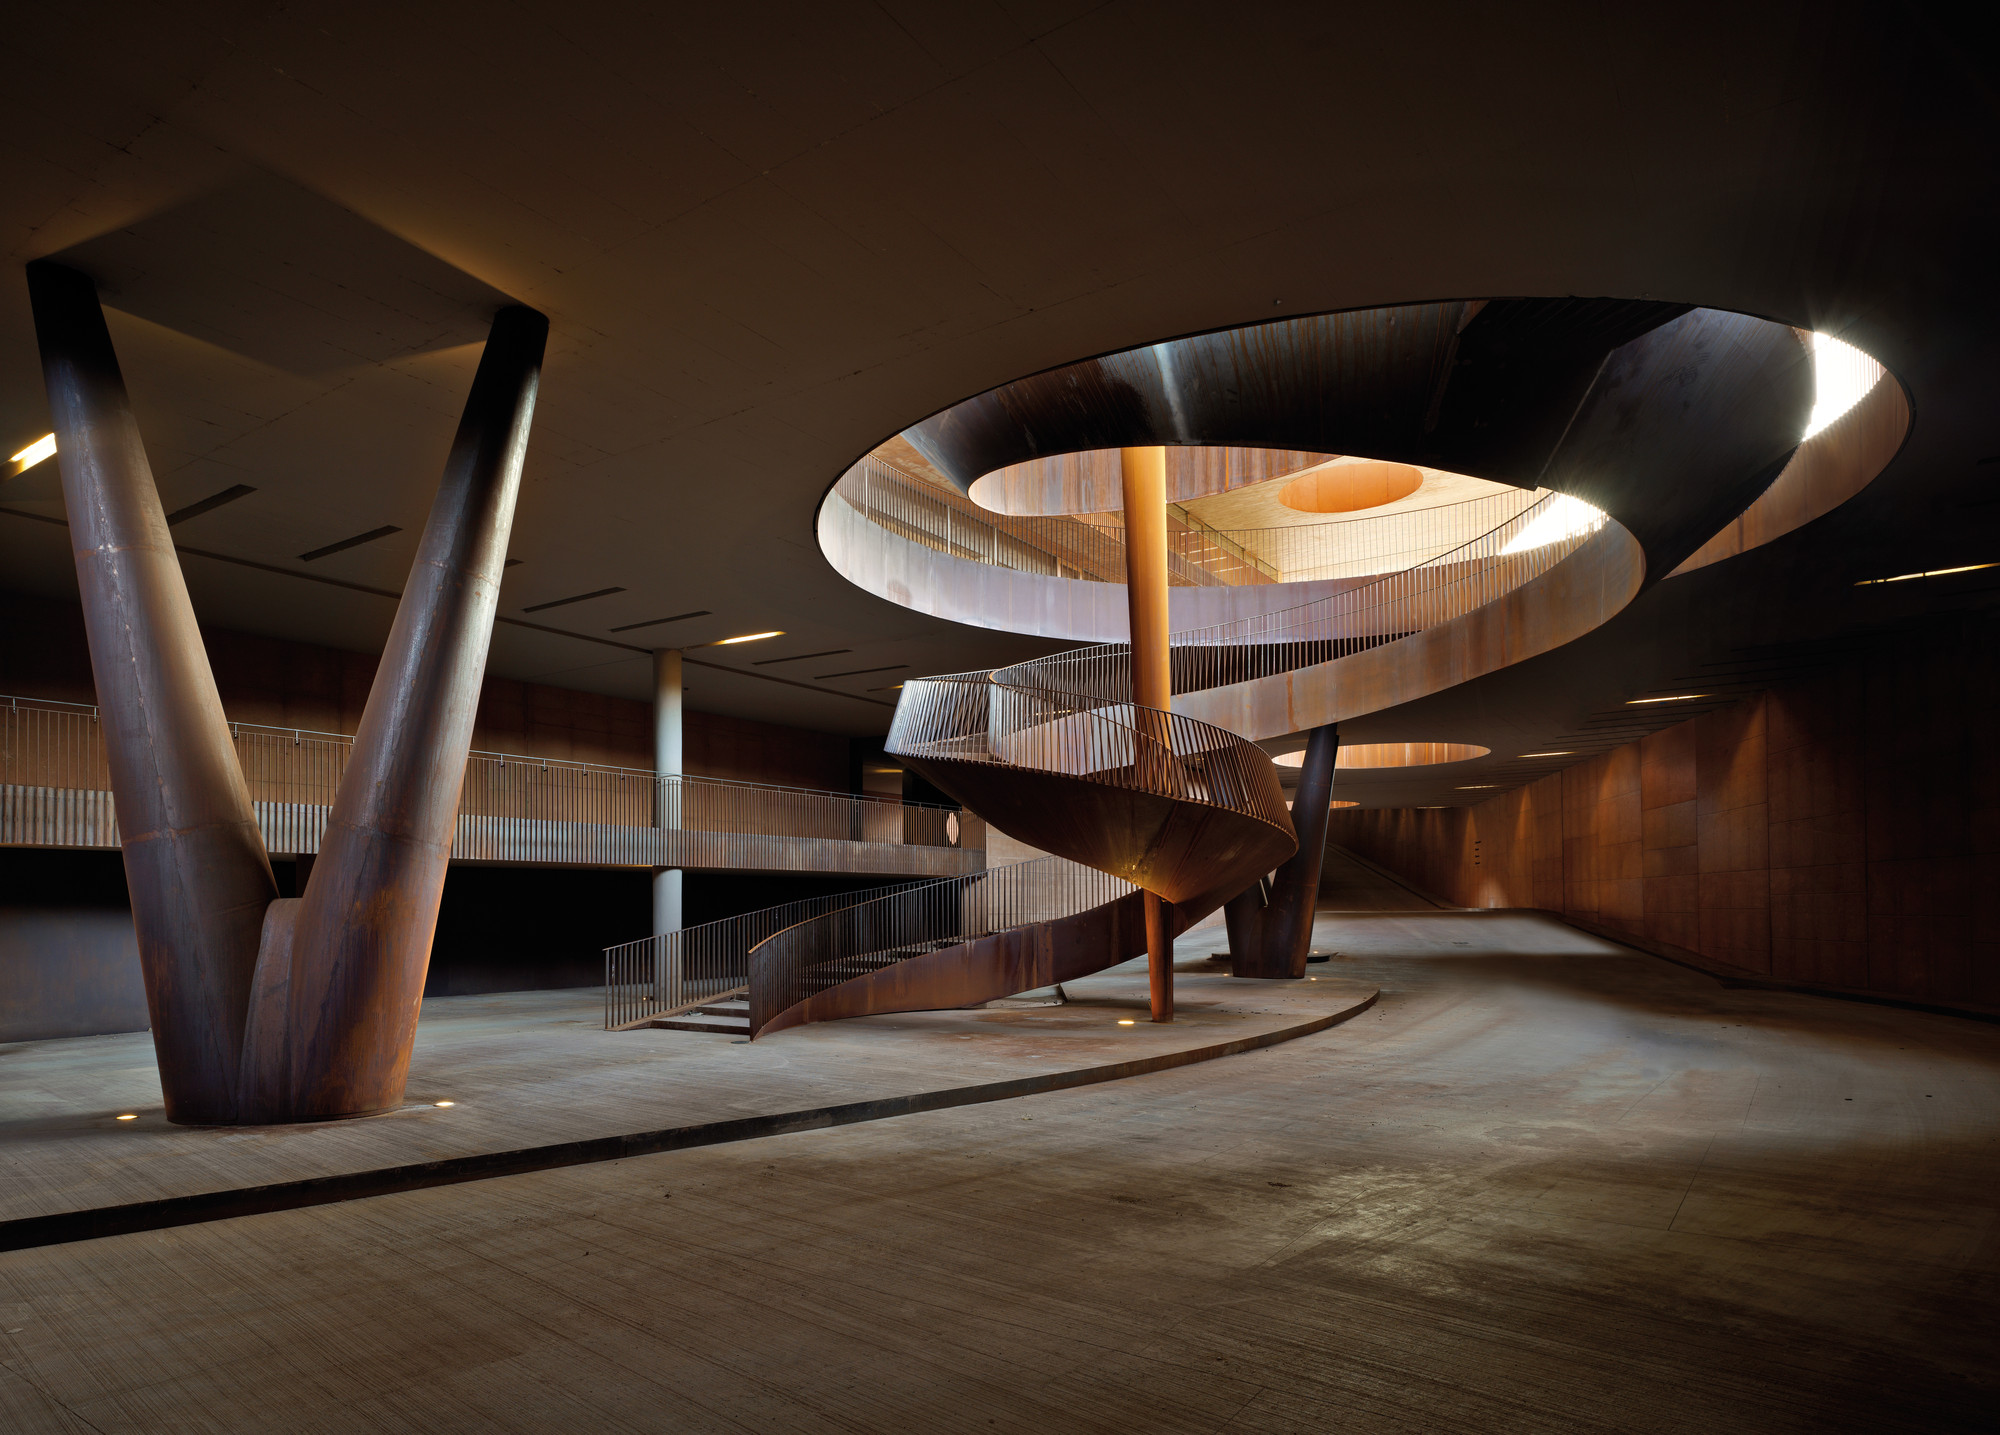 The twisting, free-floating staircase leads visitors to the podium level